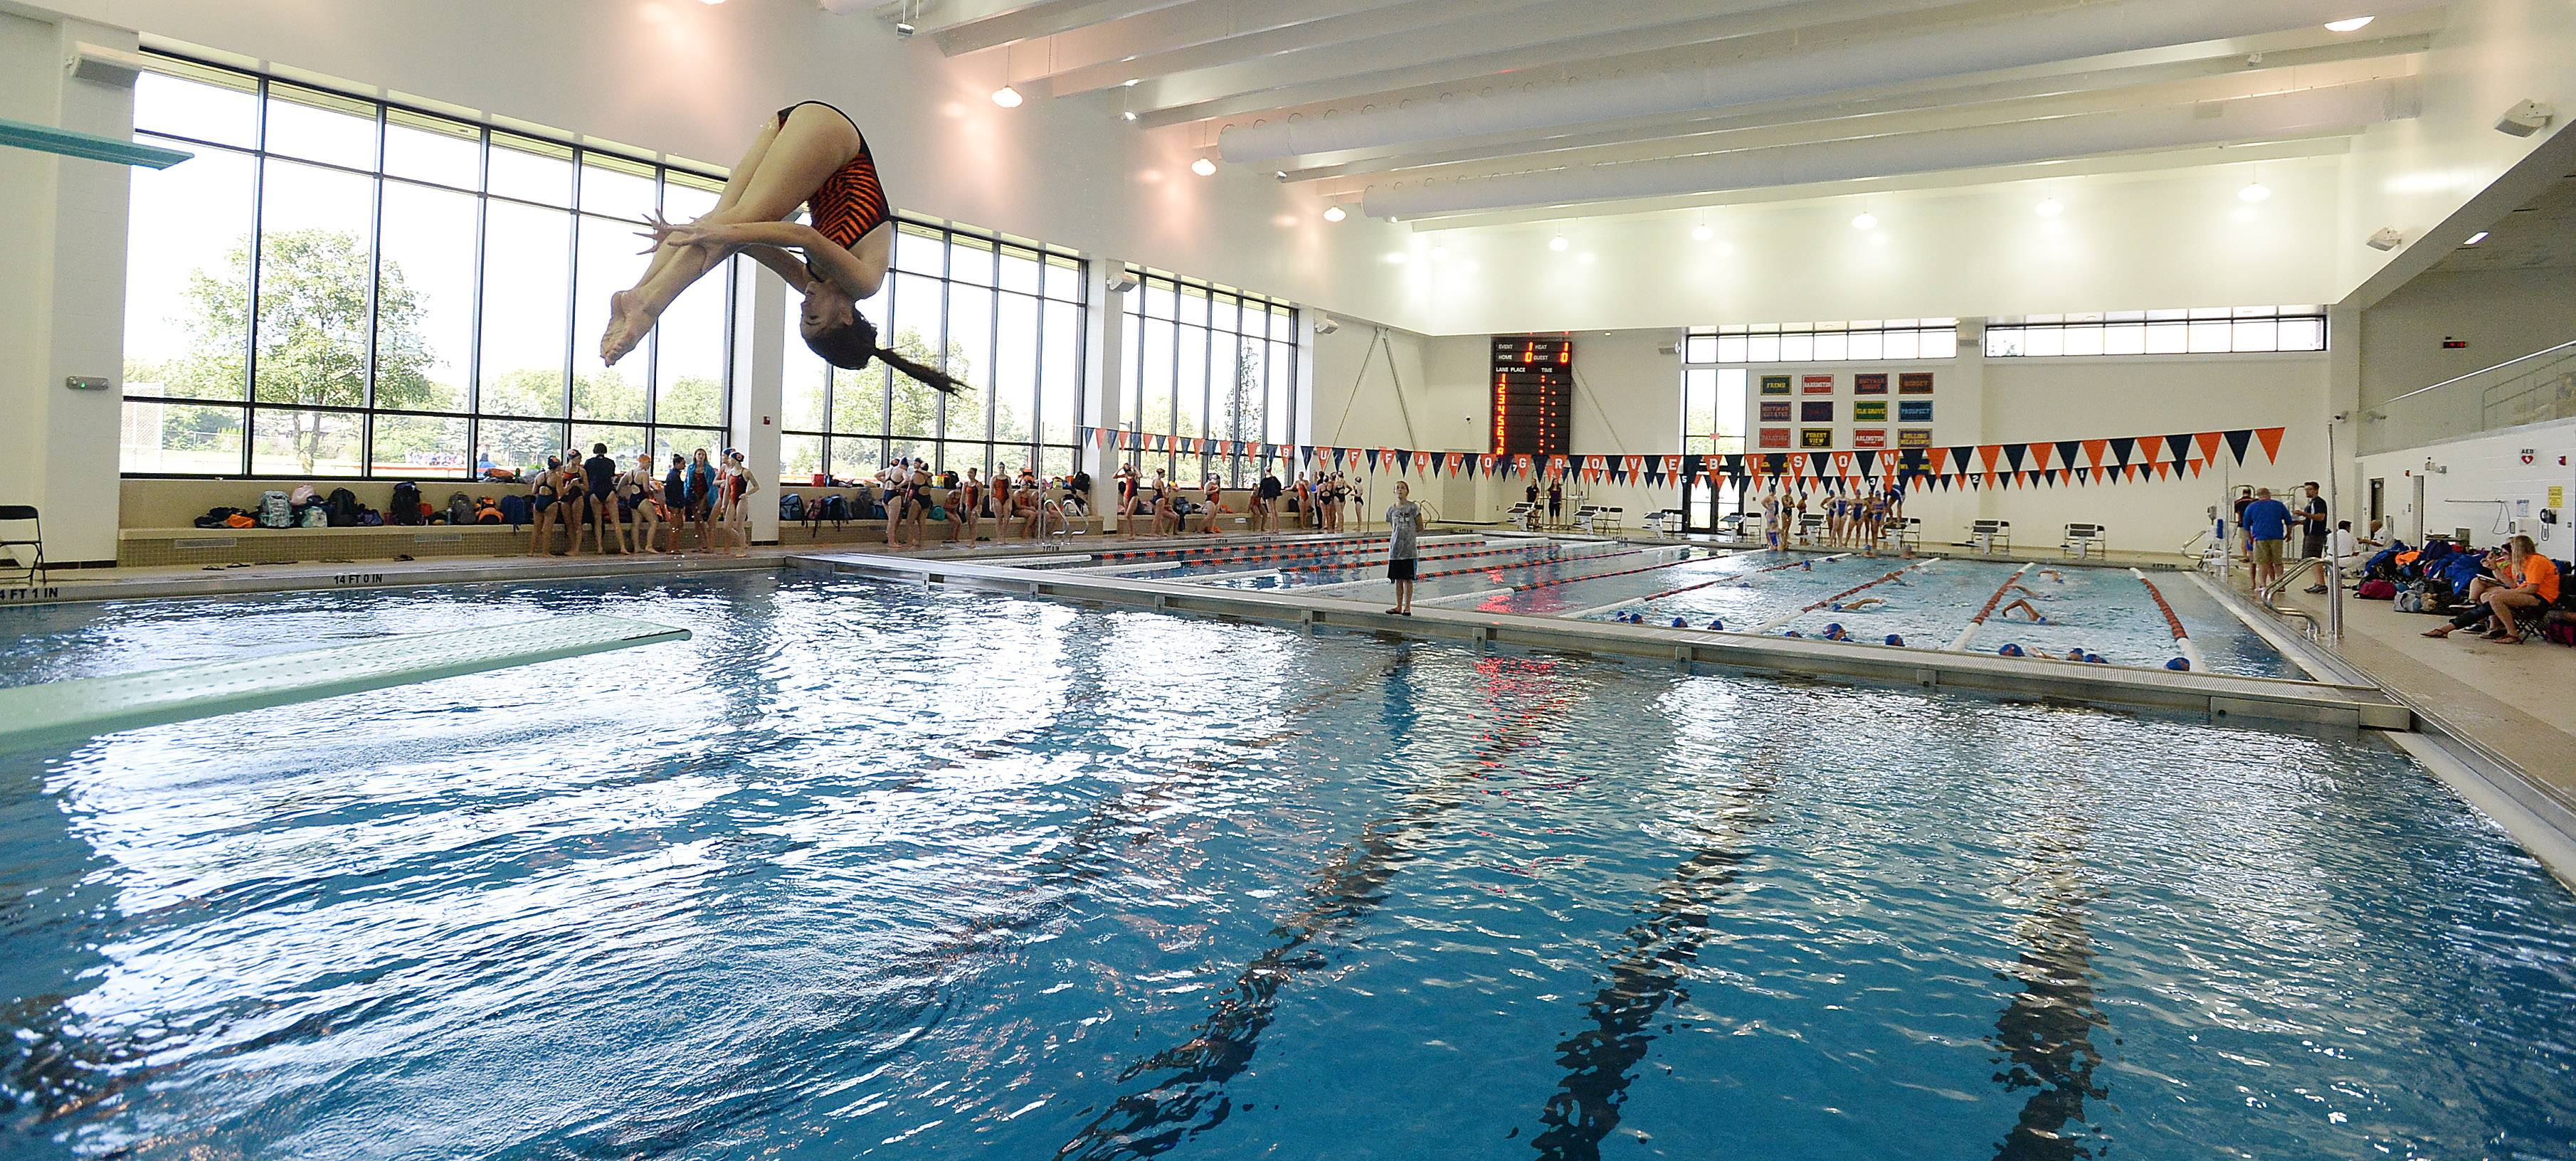 The new pool at Buffalo Grove High School got its first varsity action in a dual meet with Hoffman Estates on Thursday.